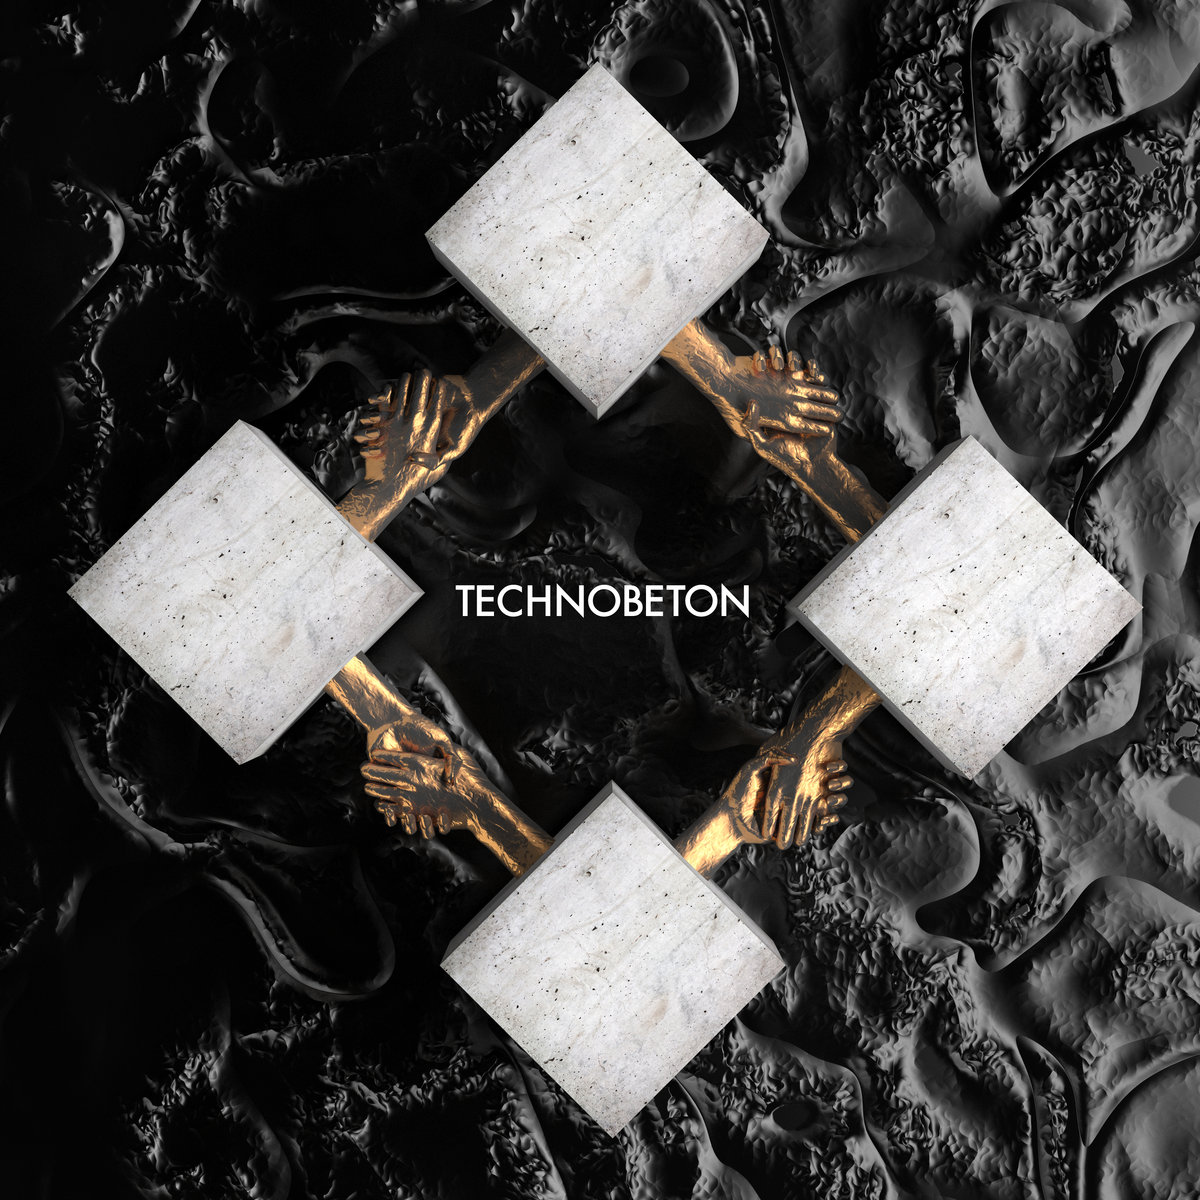 PREMIERE – Technobeton – This is Countach (Daniel Kyo Remix) (Nein Records)